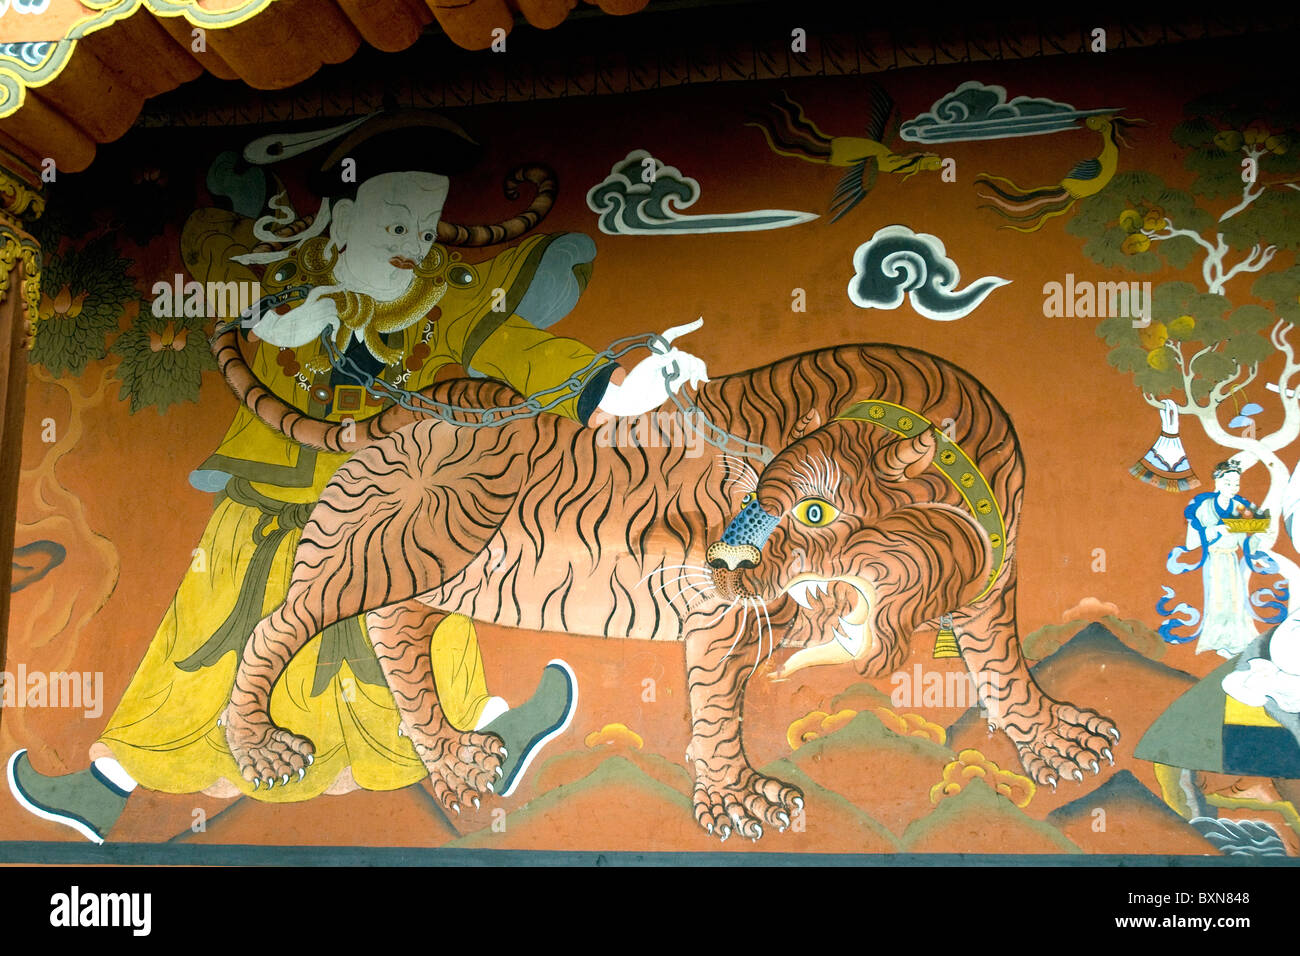 The sacred legend of Guru Rinpoche and a flying tiger painted on a wall of the Paro dzong (or administration fortress) - Stock Image